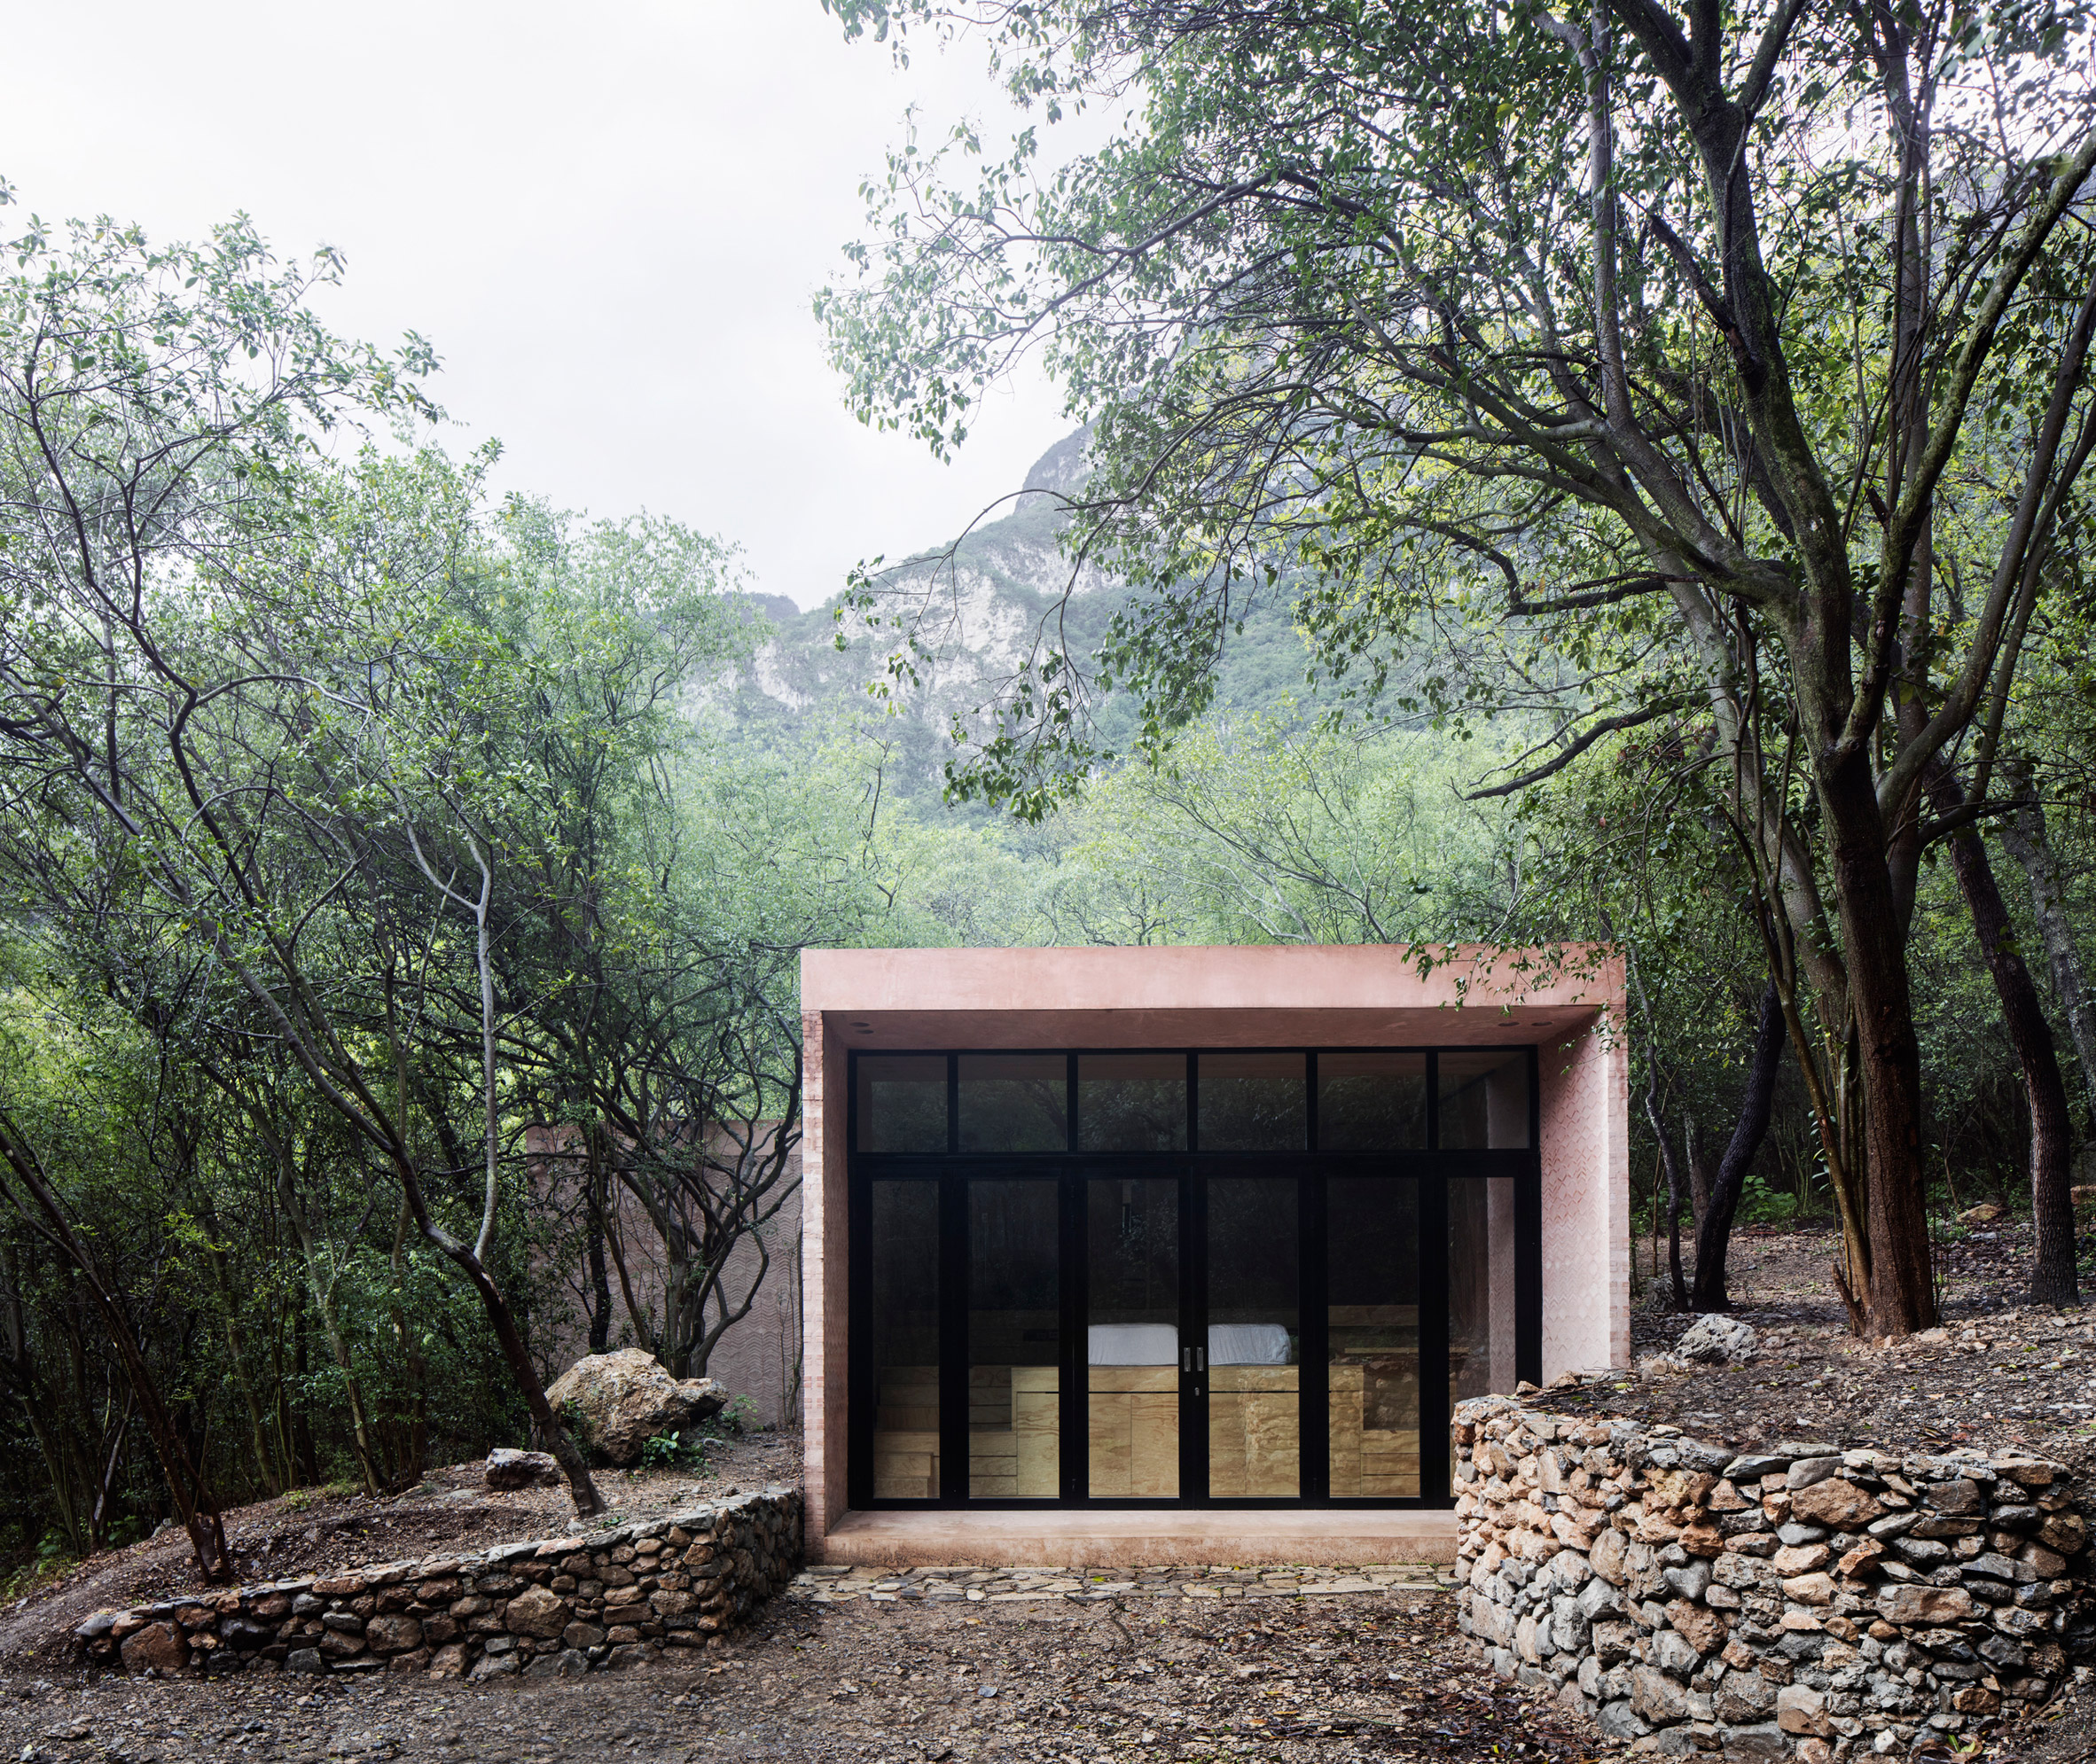 Reflective holiday home by Tatiana Bilbao hides among trees in Mexico